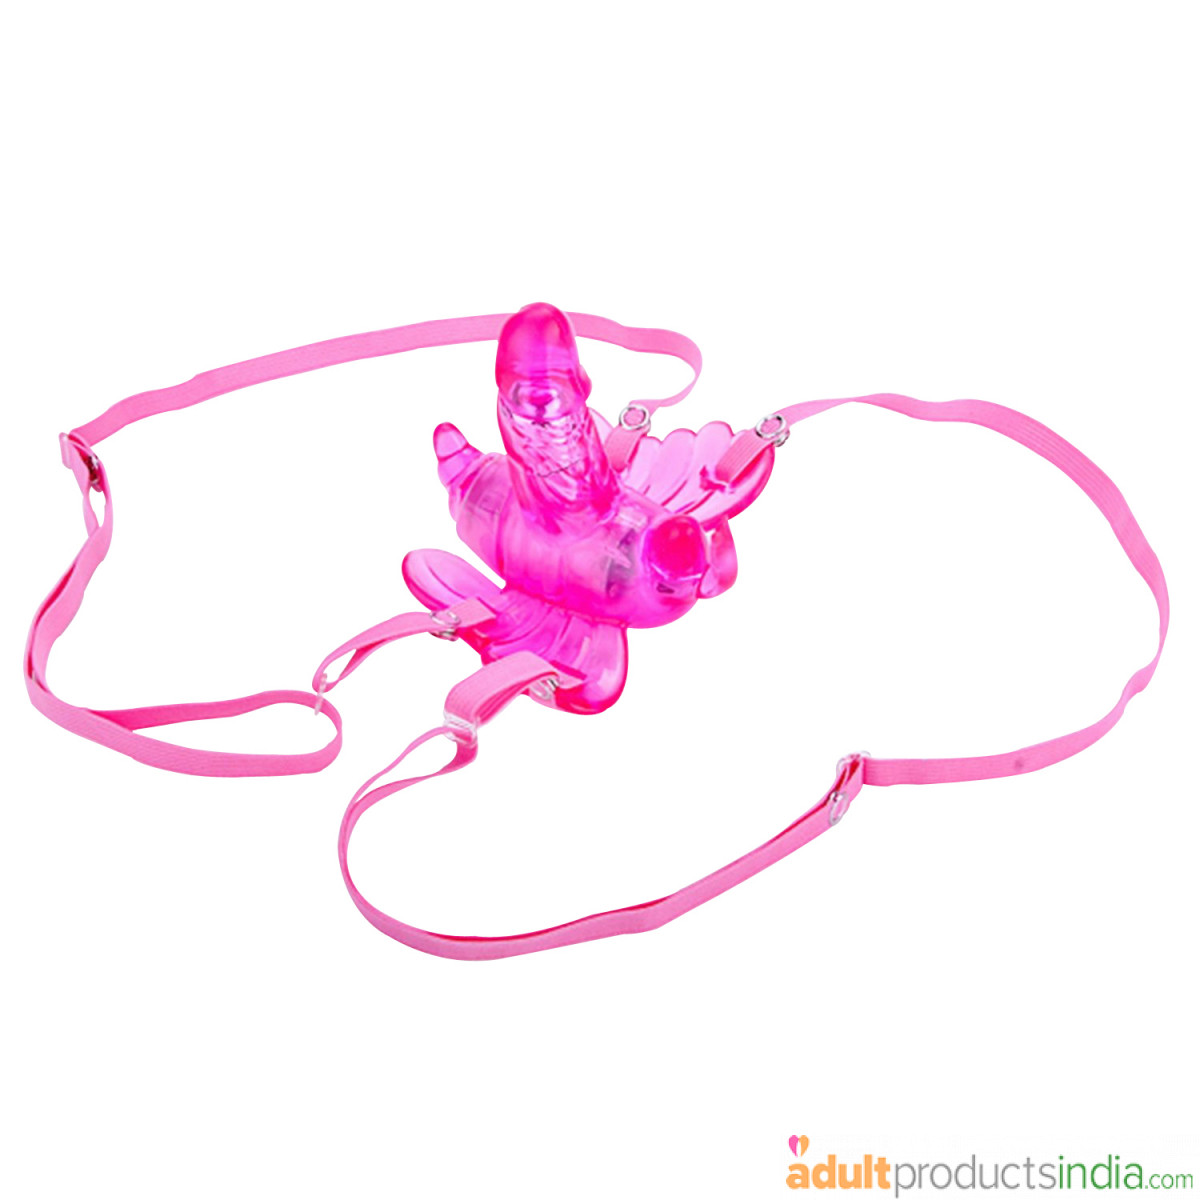 INS 12 Speeds Wireless Remote Control Strap-on Butterfly Vibrator